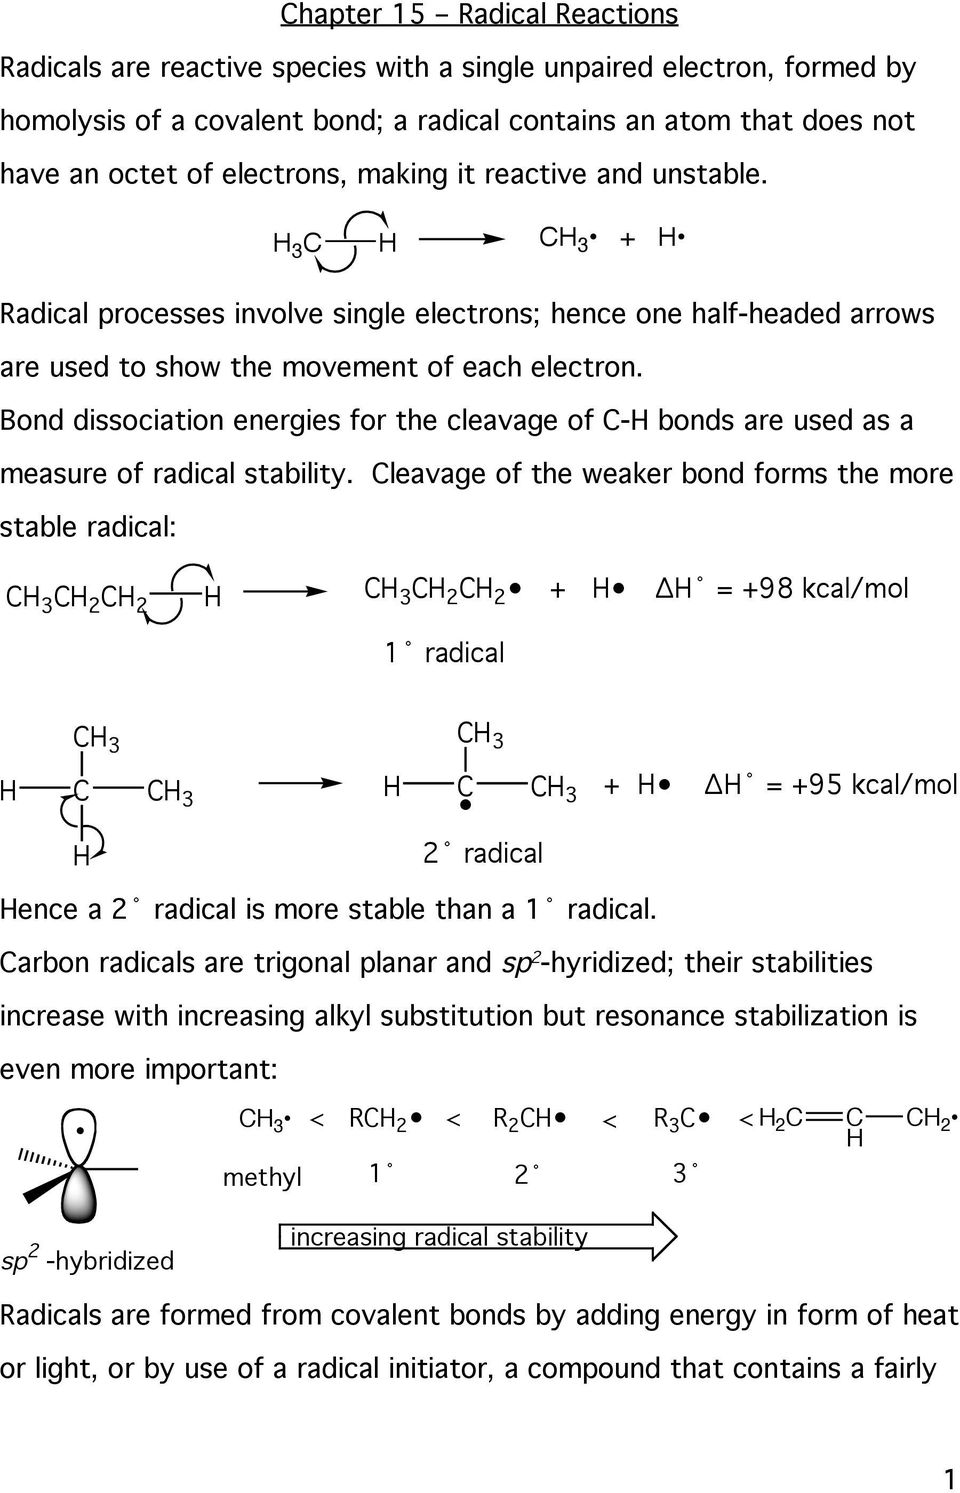 Bond dissociation energies for the cleavage of C- bonds are used as a measure of radical stability. eavage of the weaker bond forms the more stable radical: C 2 C 2 C 2 C 2 +!